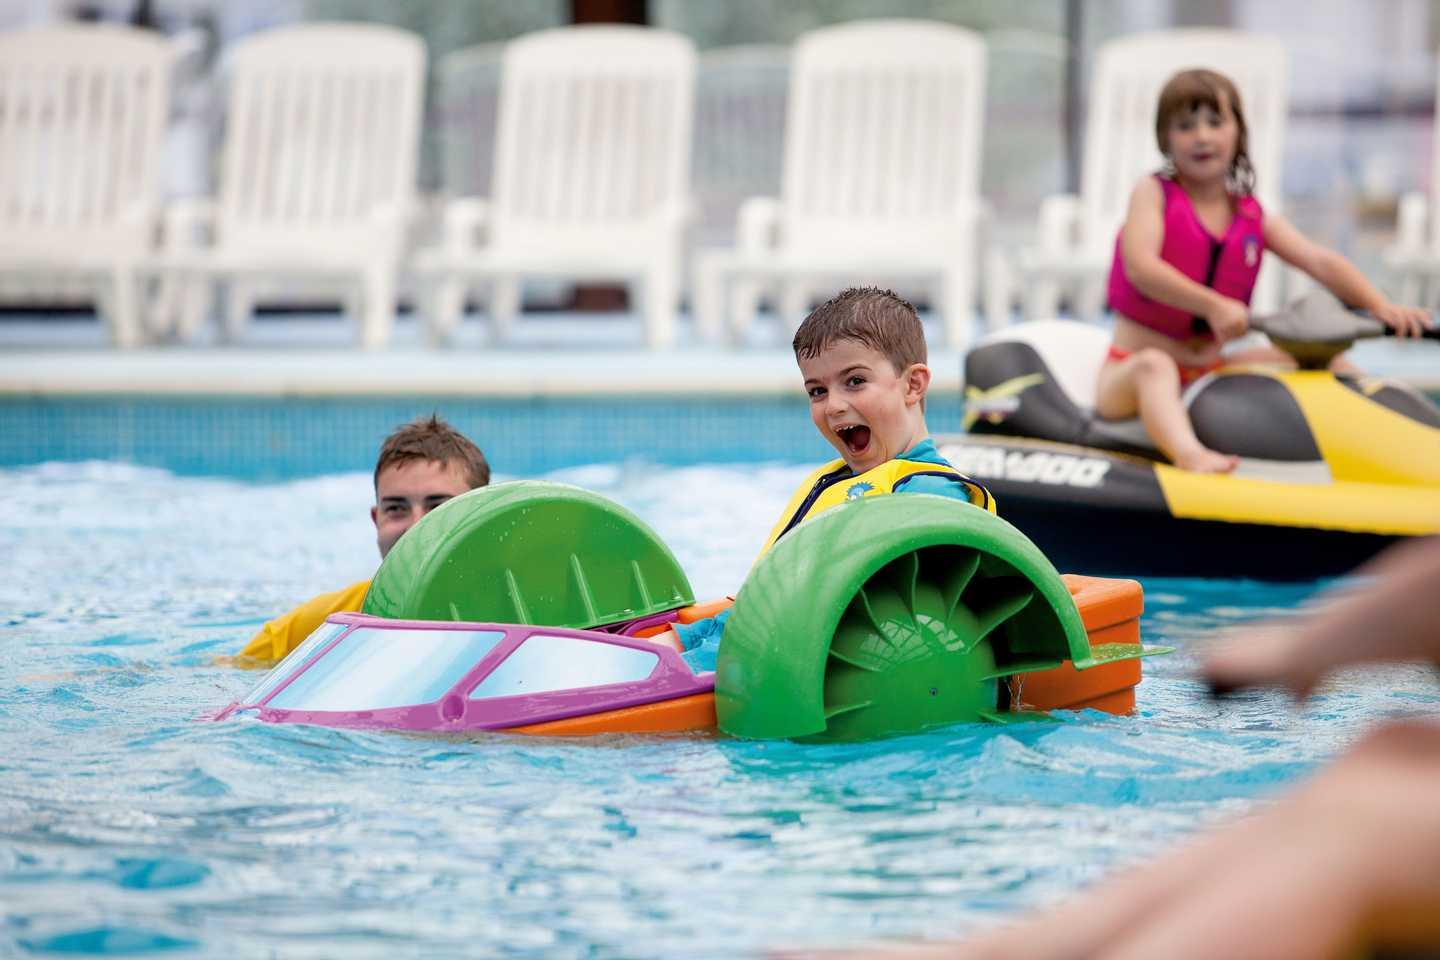 Child navigating the pool in a Aqua Paddler